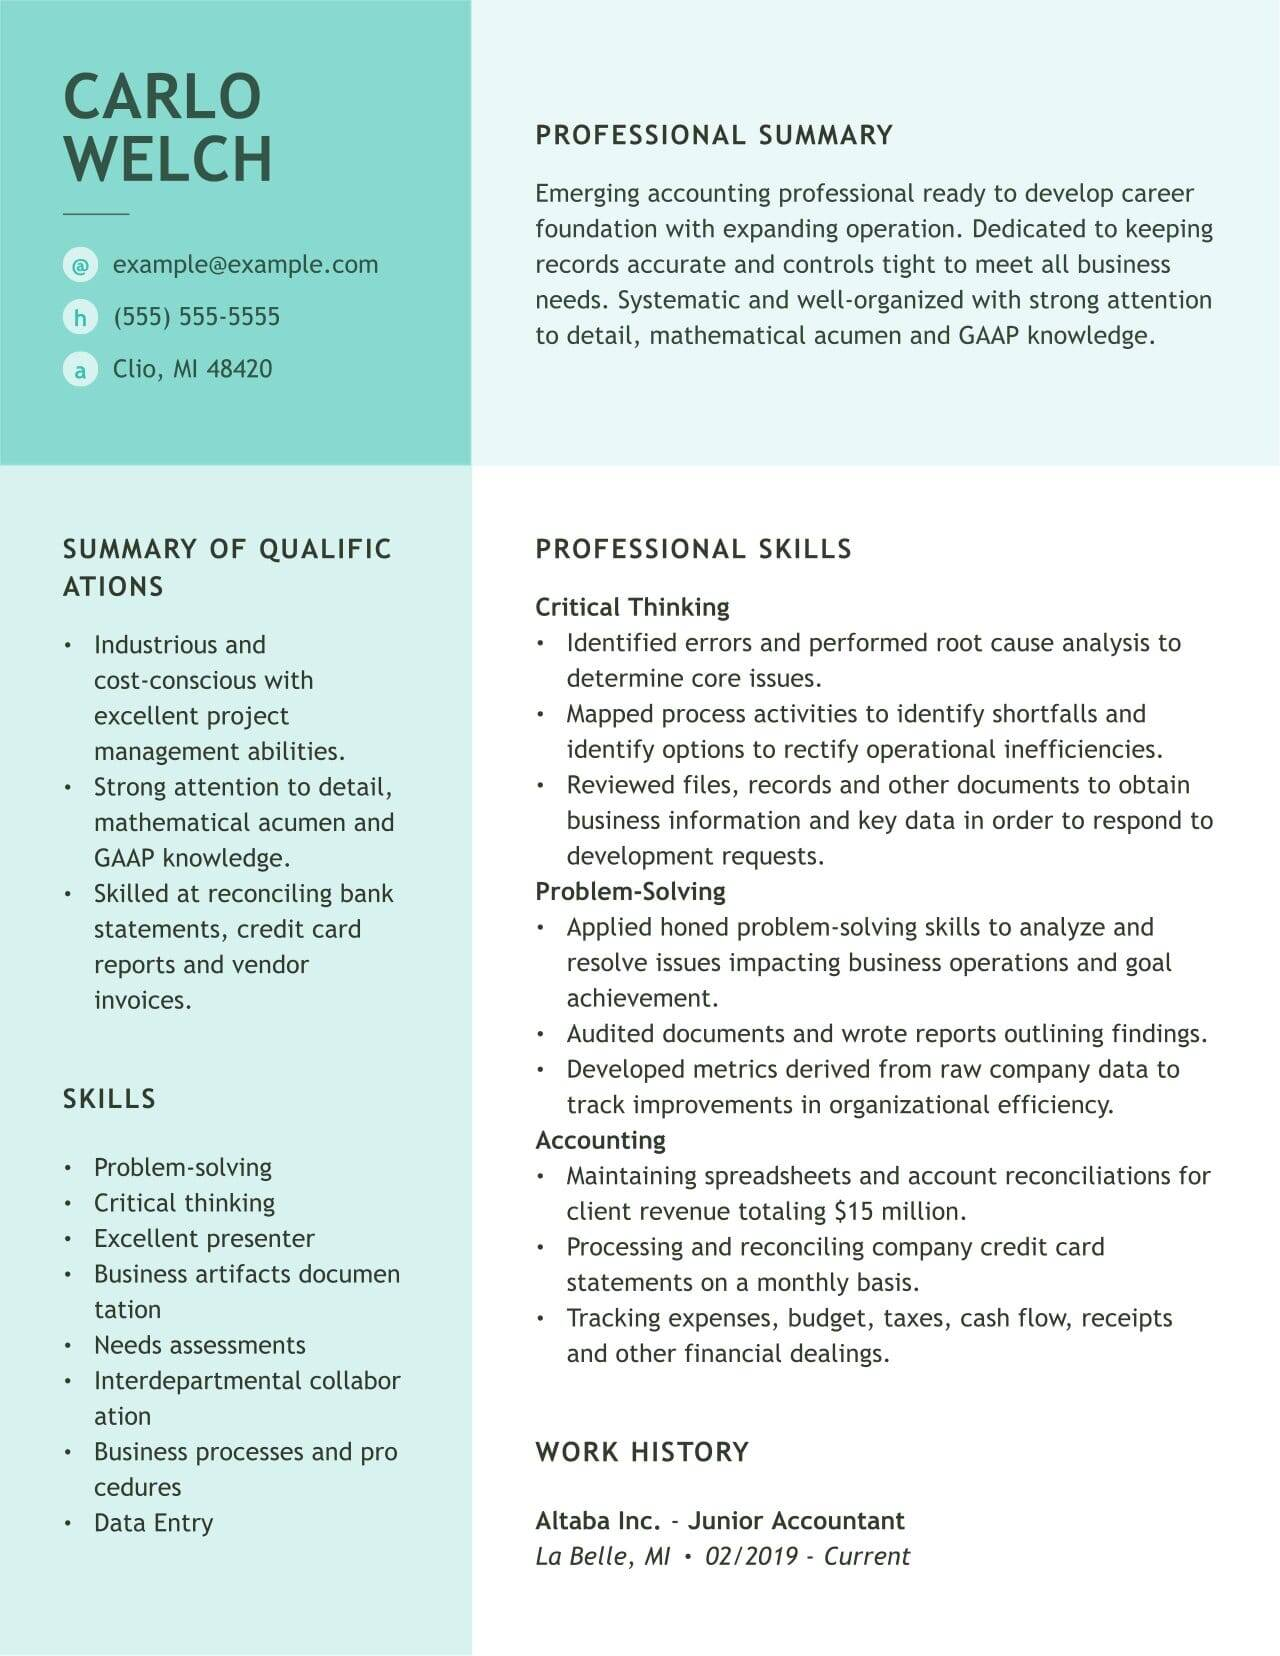 accounting resume examples and guides myperfectresume areas of expertise for accountant Resume Areas Of Expertise For Accountant Resume